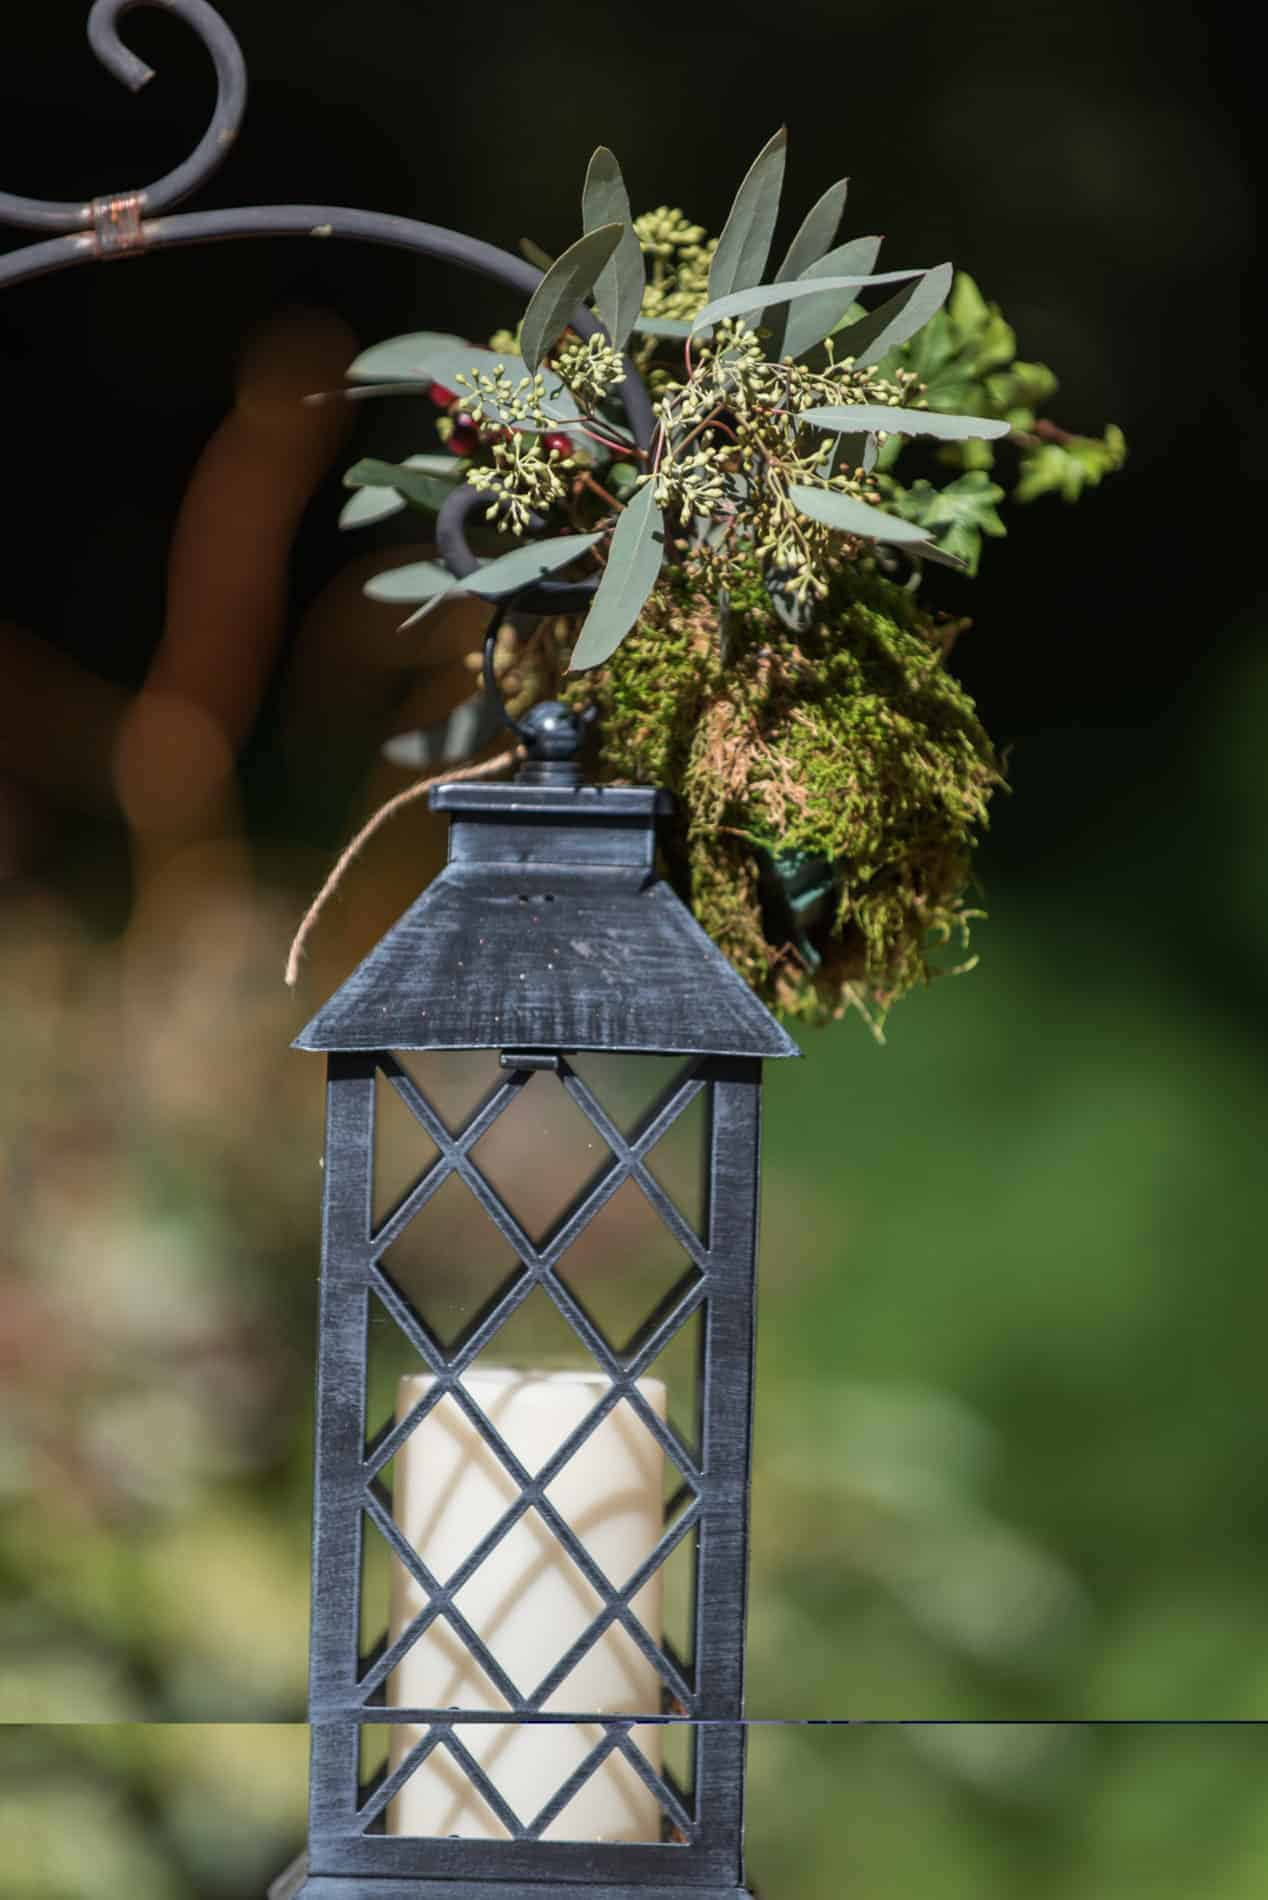 Gray Lantern at a Rustic Outdoor Wedding